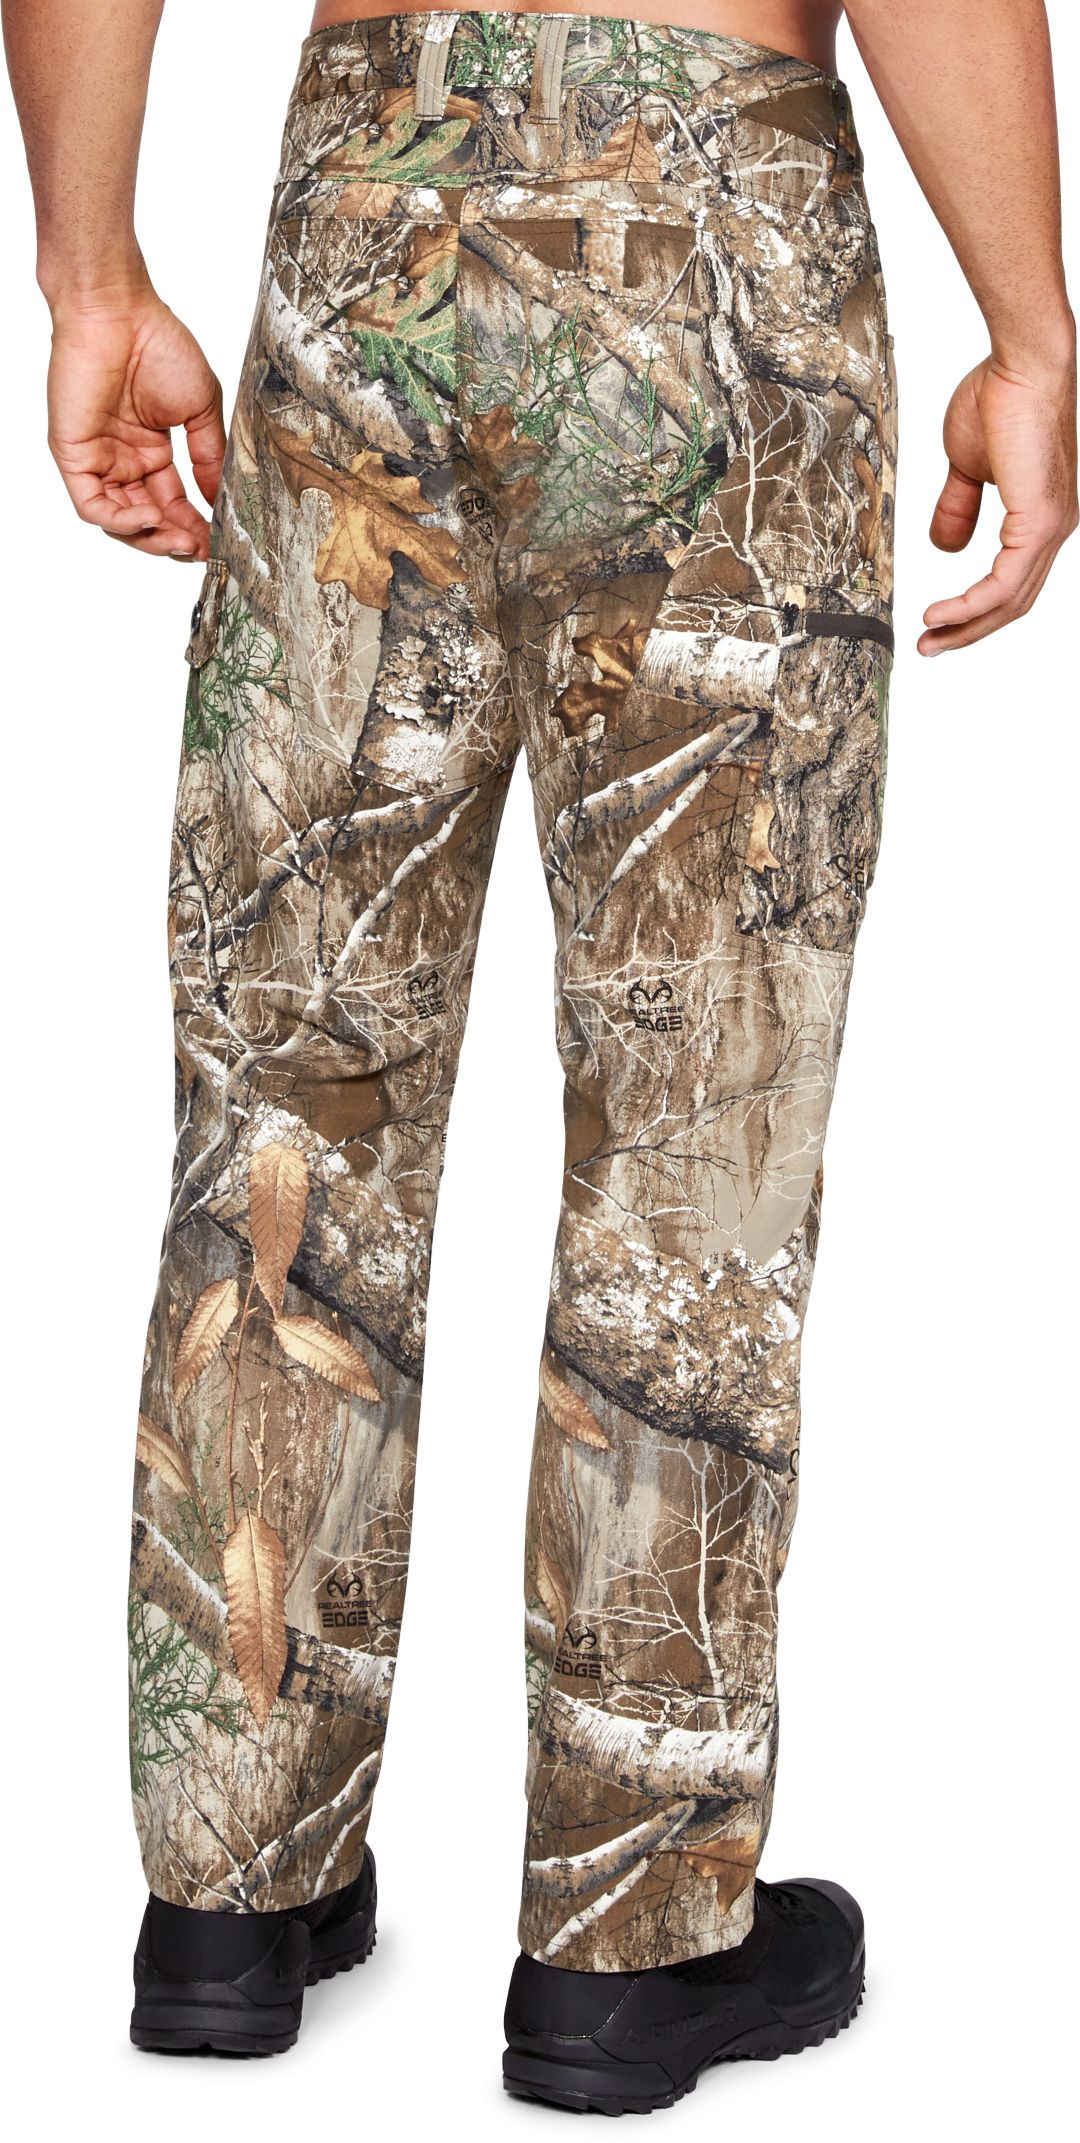 943e0a0bd472 Under Armour Men's Field OPS Hunting Pants